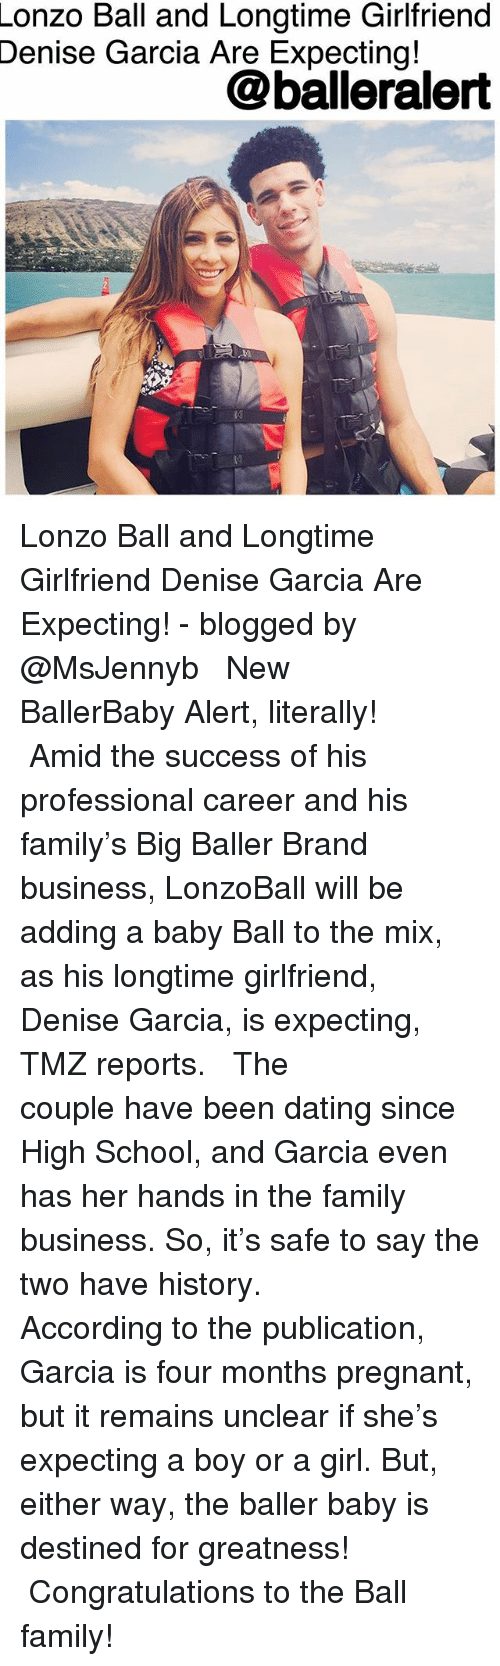 Dating, Family, and Memes: Lonzo  Ball and Longtime Girlfriend  Garcia Are Expecting!  Denise  @balleralert Lonzo Ball and Longtime Girlfriend Denise Garcia Are Expecting! - blogged by @MsJennyb ⠀⠀⠀⠀⠀⠀⠀ ⠀⠀⠀⠀⠀⠀⠀ New BallerBaby Alert, literally! ⠀⠀⠀⠀⠀⠀⠀ ⠀⠀⠀⠀⠀⠀⠀ Amid the success of his professional career and his family's Big Baller Brand business, LonzoBall will be adding a baby Ball to the mix, as his longtime girlfriend, Denise Garcia, is expecting, TMZ reports. ⠀⠀⠀⠀⠀⠀⠀ ⠀⠀⠀⠀⠀⠀⠀ The couple have been dating since High School, and Garcia even has her hands in the family business. So, it's safe to say the two have history. ⠀⠀⠀⠀⠀⠀⠀ ⠀⠀⠀⠀⠀⠀⠀ According to the publication, Garcia is four months pregnant, but it remains unclear if she's expecting a boy or a girl. But, either way, the baller baby is destined for greatness! ⠀⠀⠀⠀⠀⠀⠀ ⠀⠀⠀⠀⠀⠀⠀ Congratulations to the Ball family!